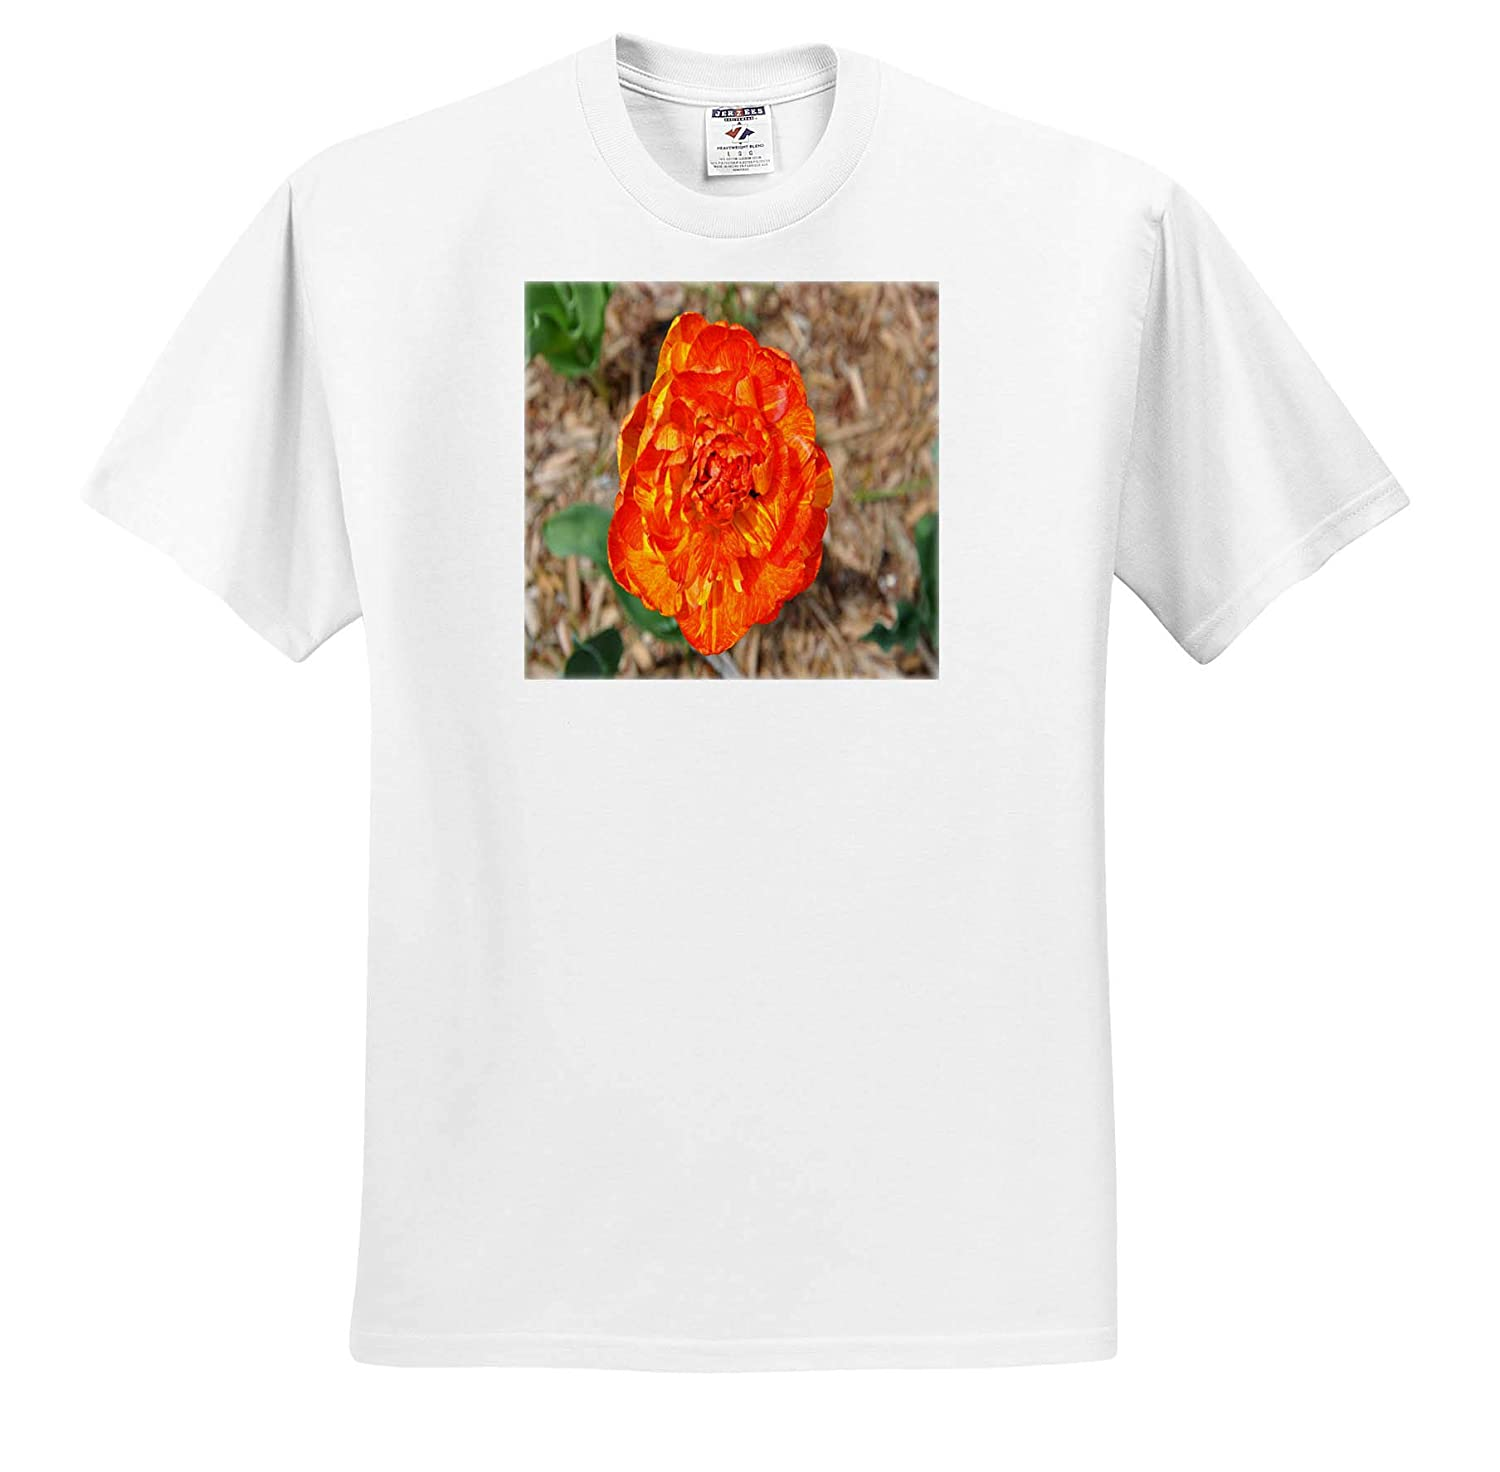 ts/_314269 Orange and Yellow Double Tulip 3dRose Dreamscapes by Leslie Adult T-Shirt XL Flowers